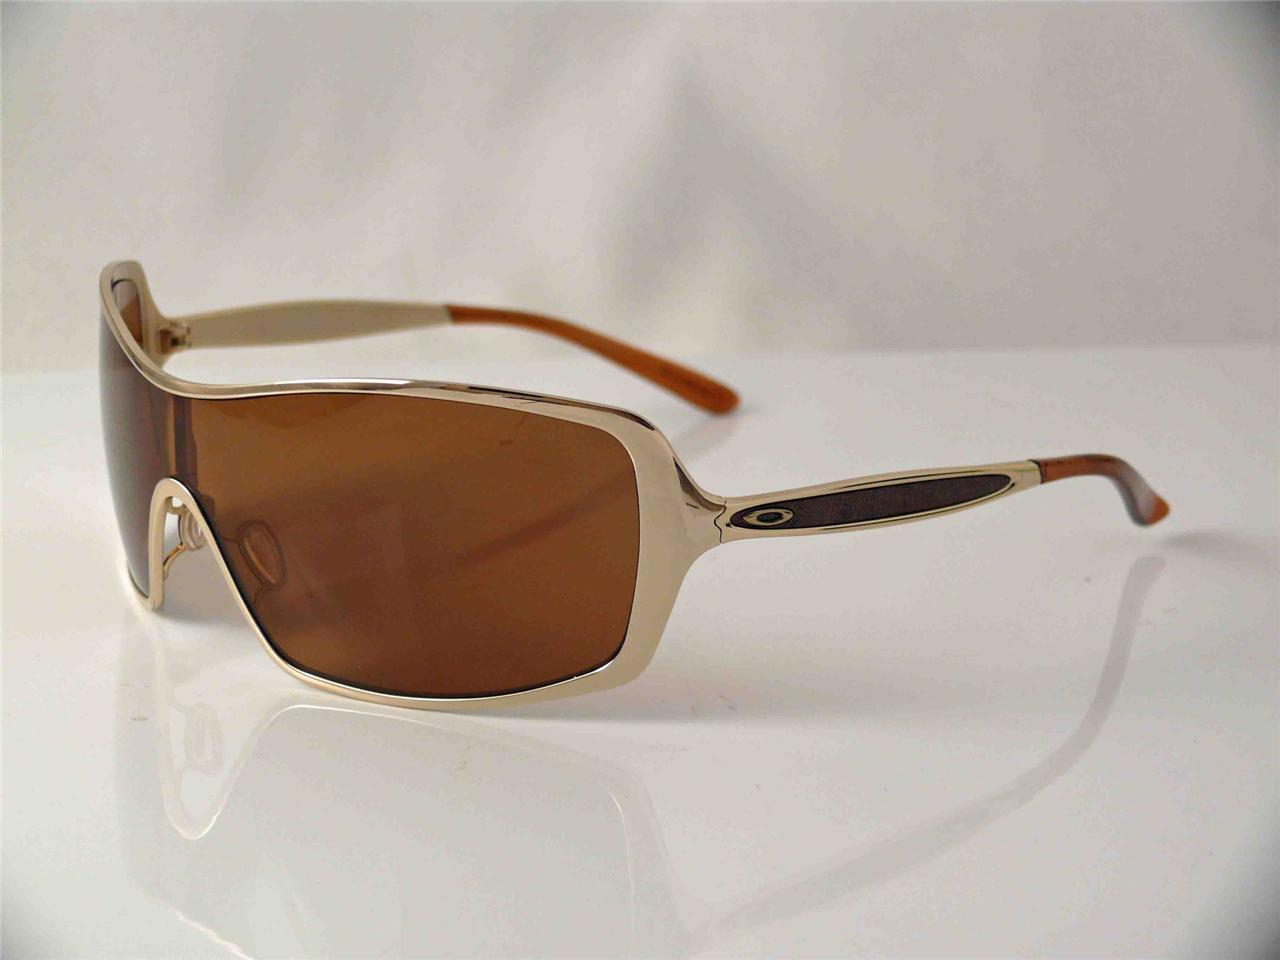 Oakley Gold Frame Sunglasses : OAKLEY POLARIZED SUNGLASSES REMEDY GOLD FRAME BRONZE ...